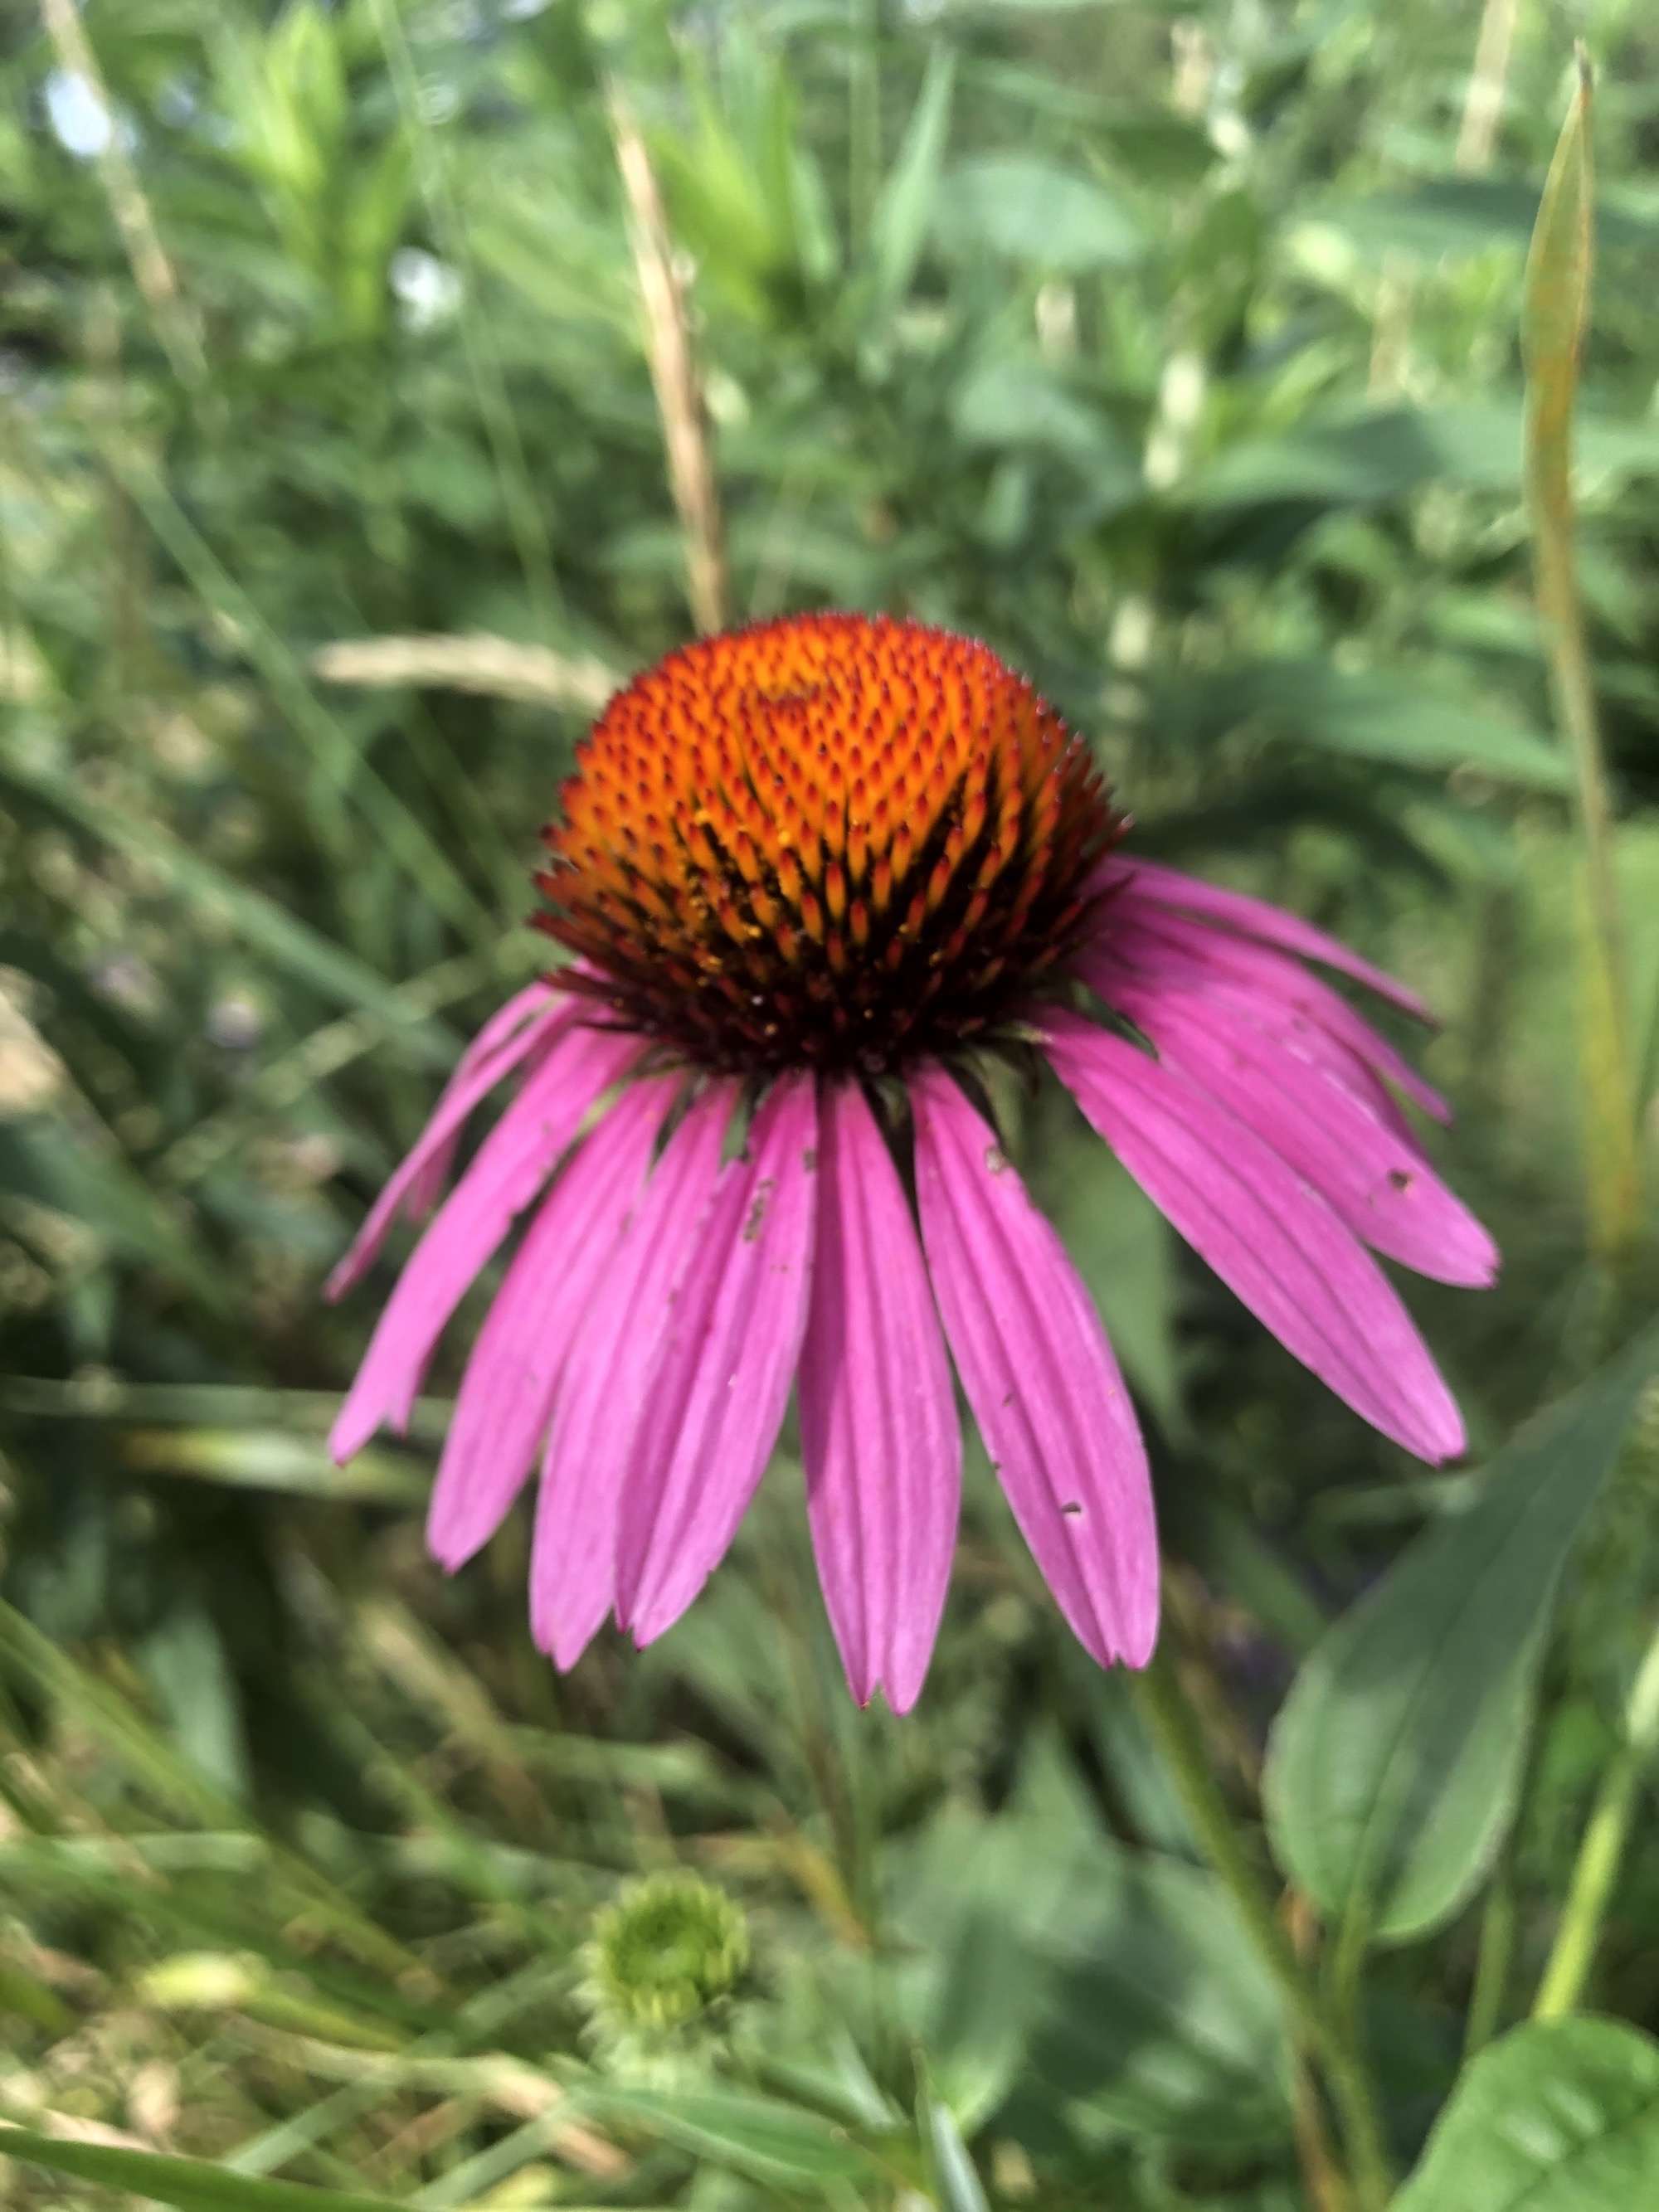 Purple coneflower in the woods in Nakoma Park in Madison, Wisconsin on July 21, 2020.